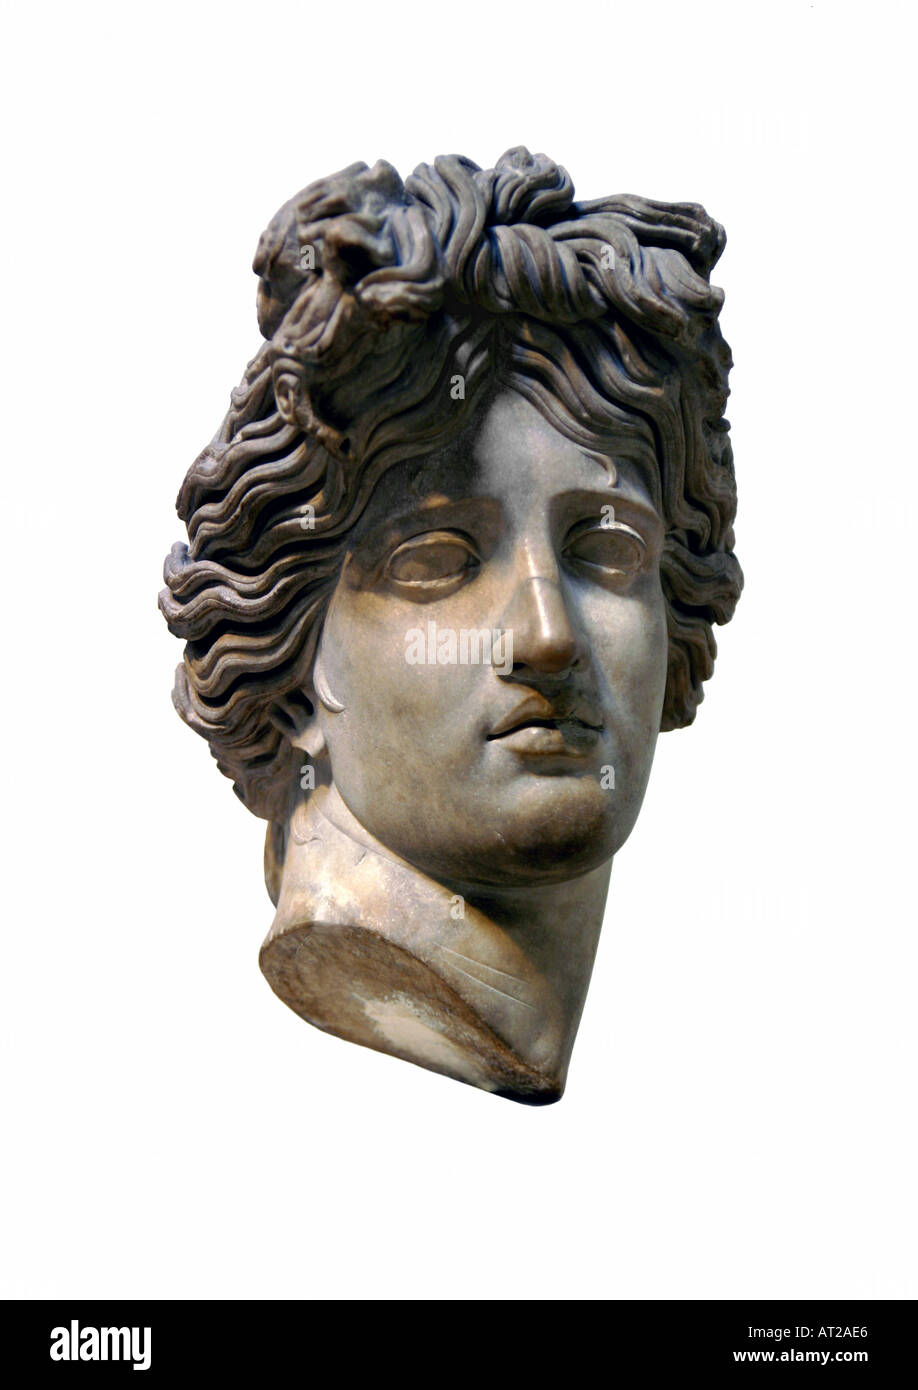 Bust of The Greek God Apollo - Stock Image